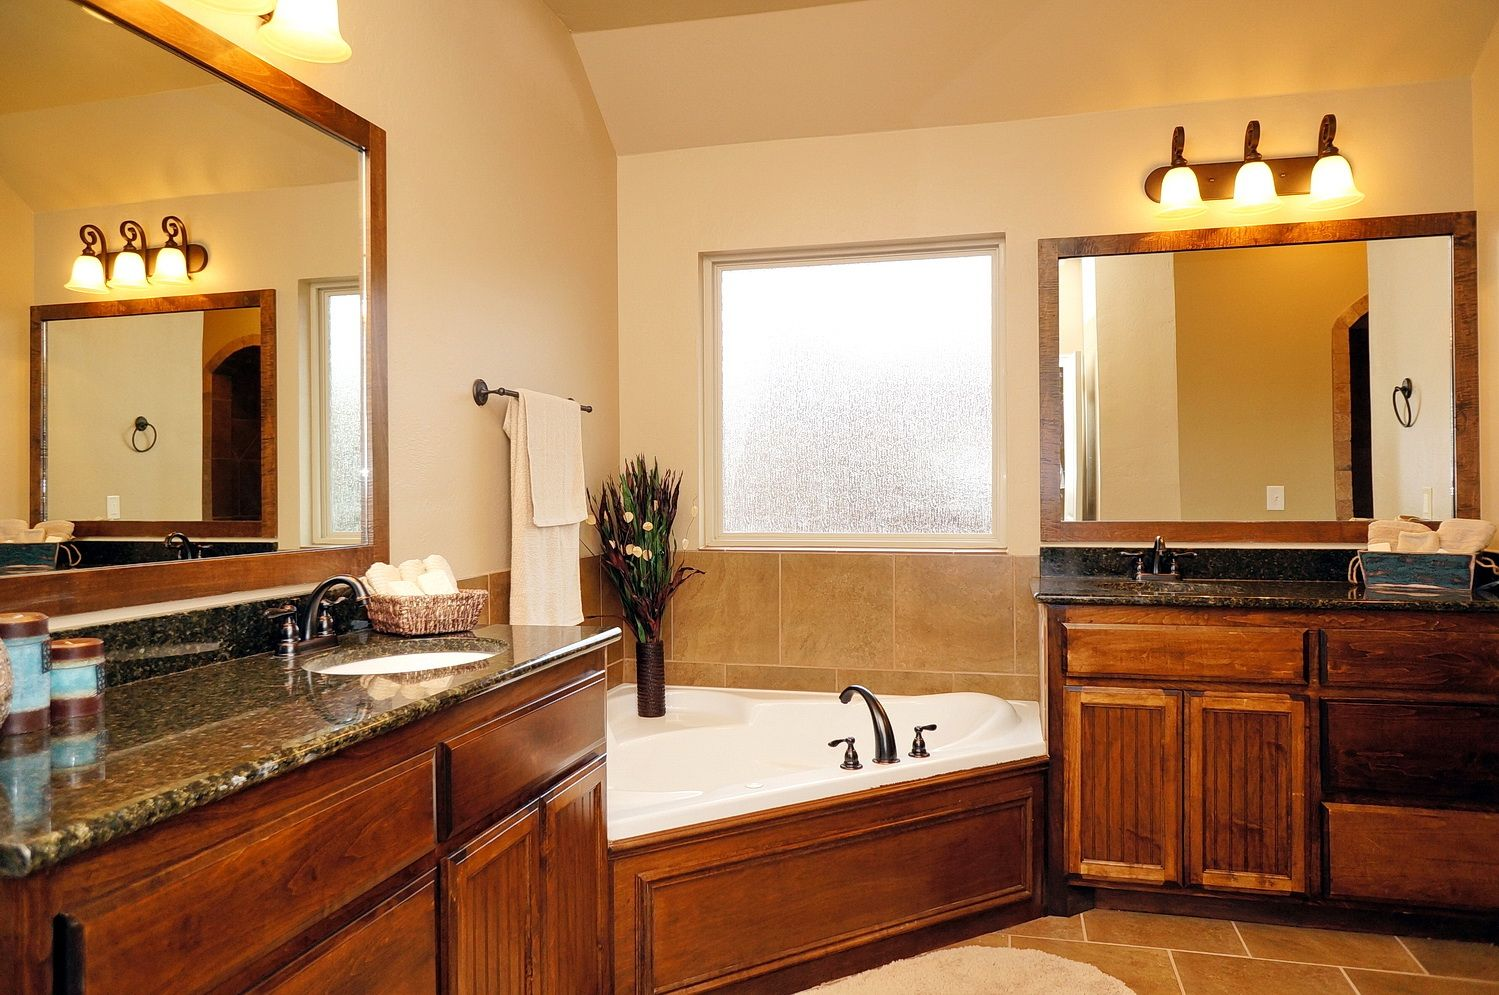 Double Vanity Bathroom Floor Plans ashford floor plan. master bathroom suite. granite counters